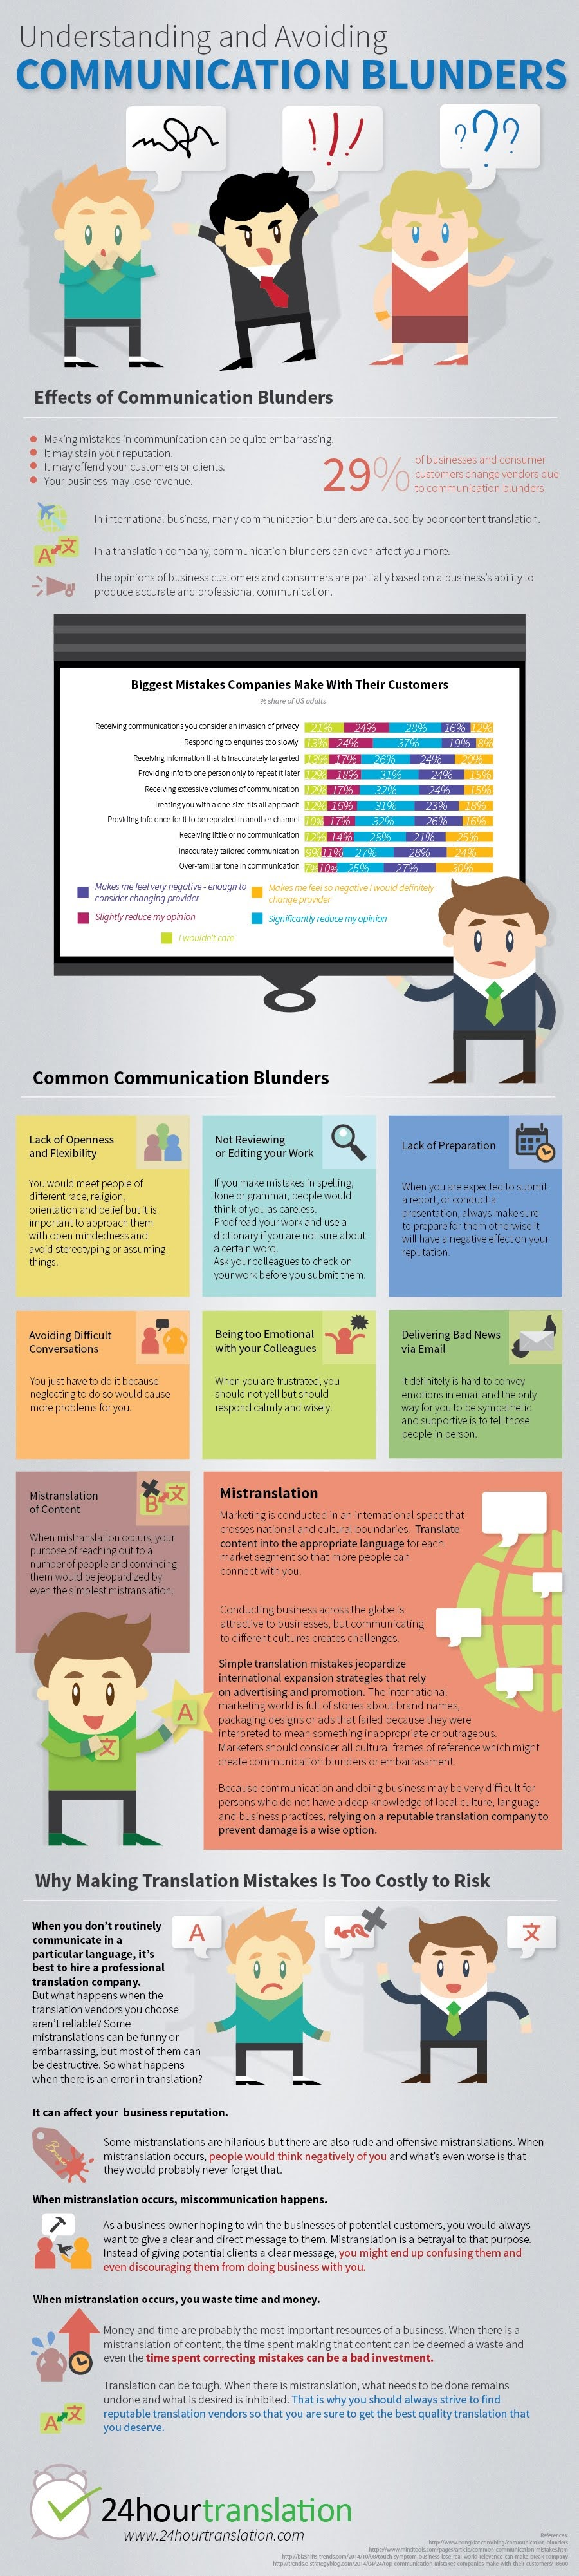 Understanding And Avoiding Communication Blunders #Infographic